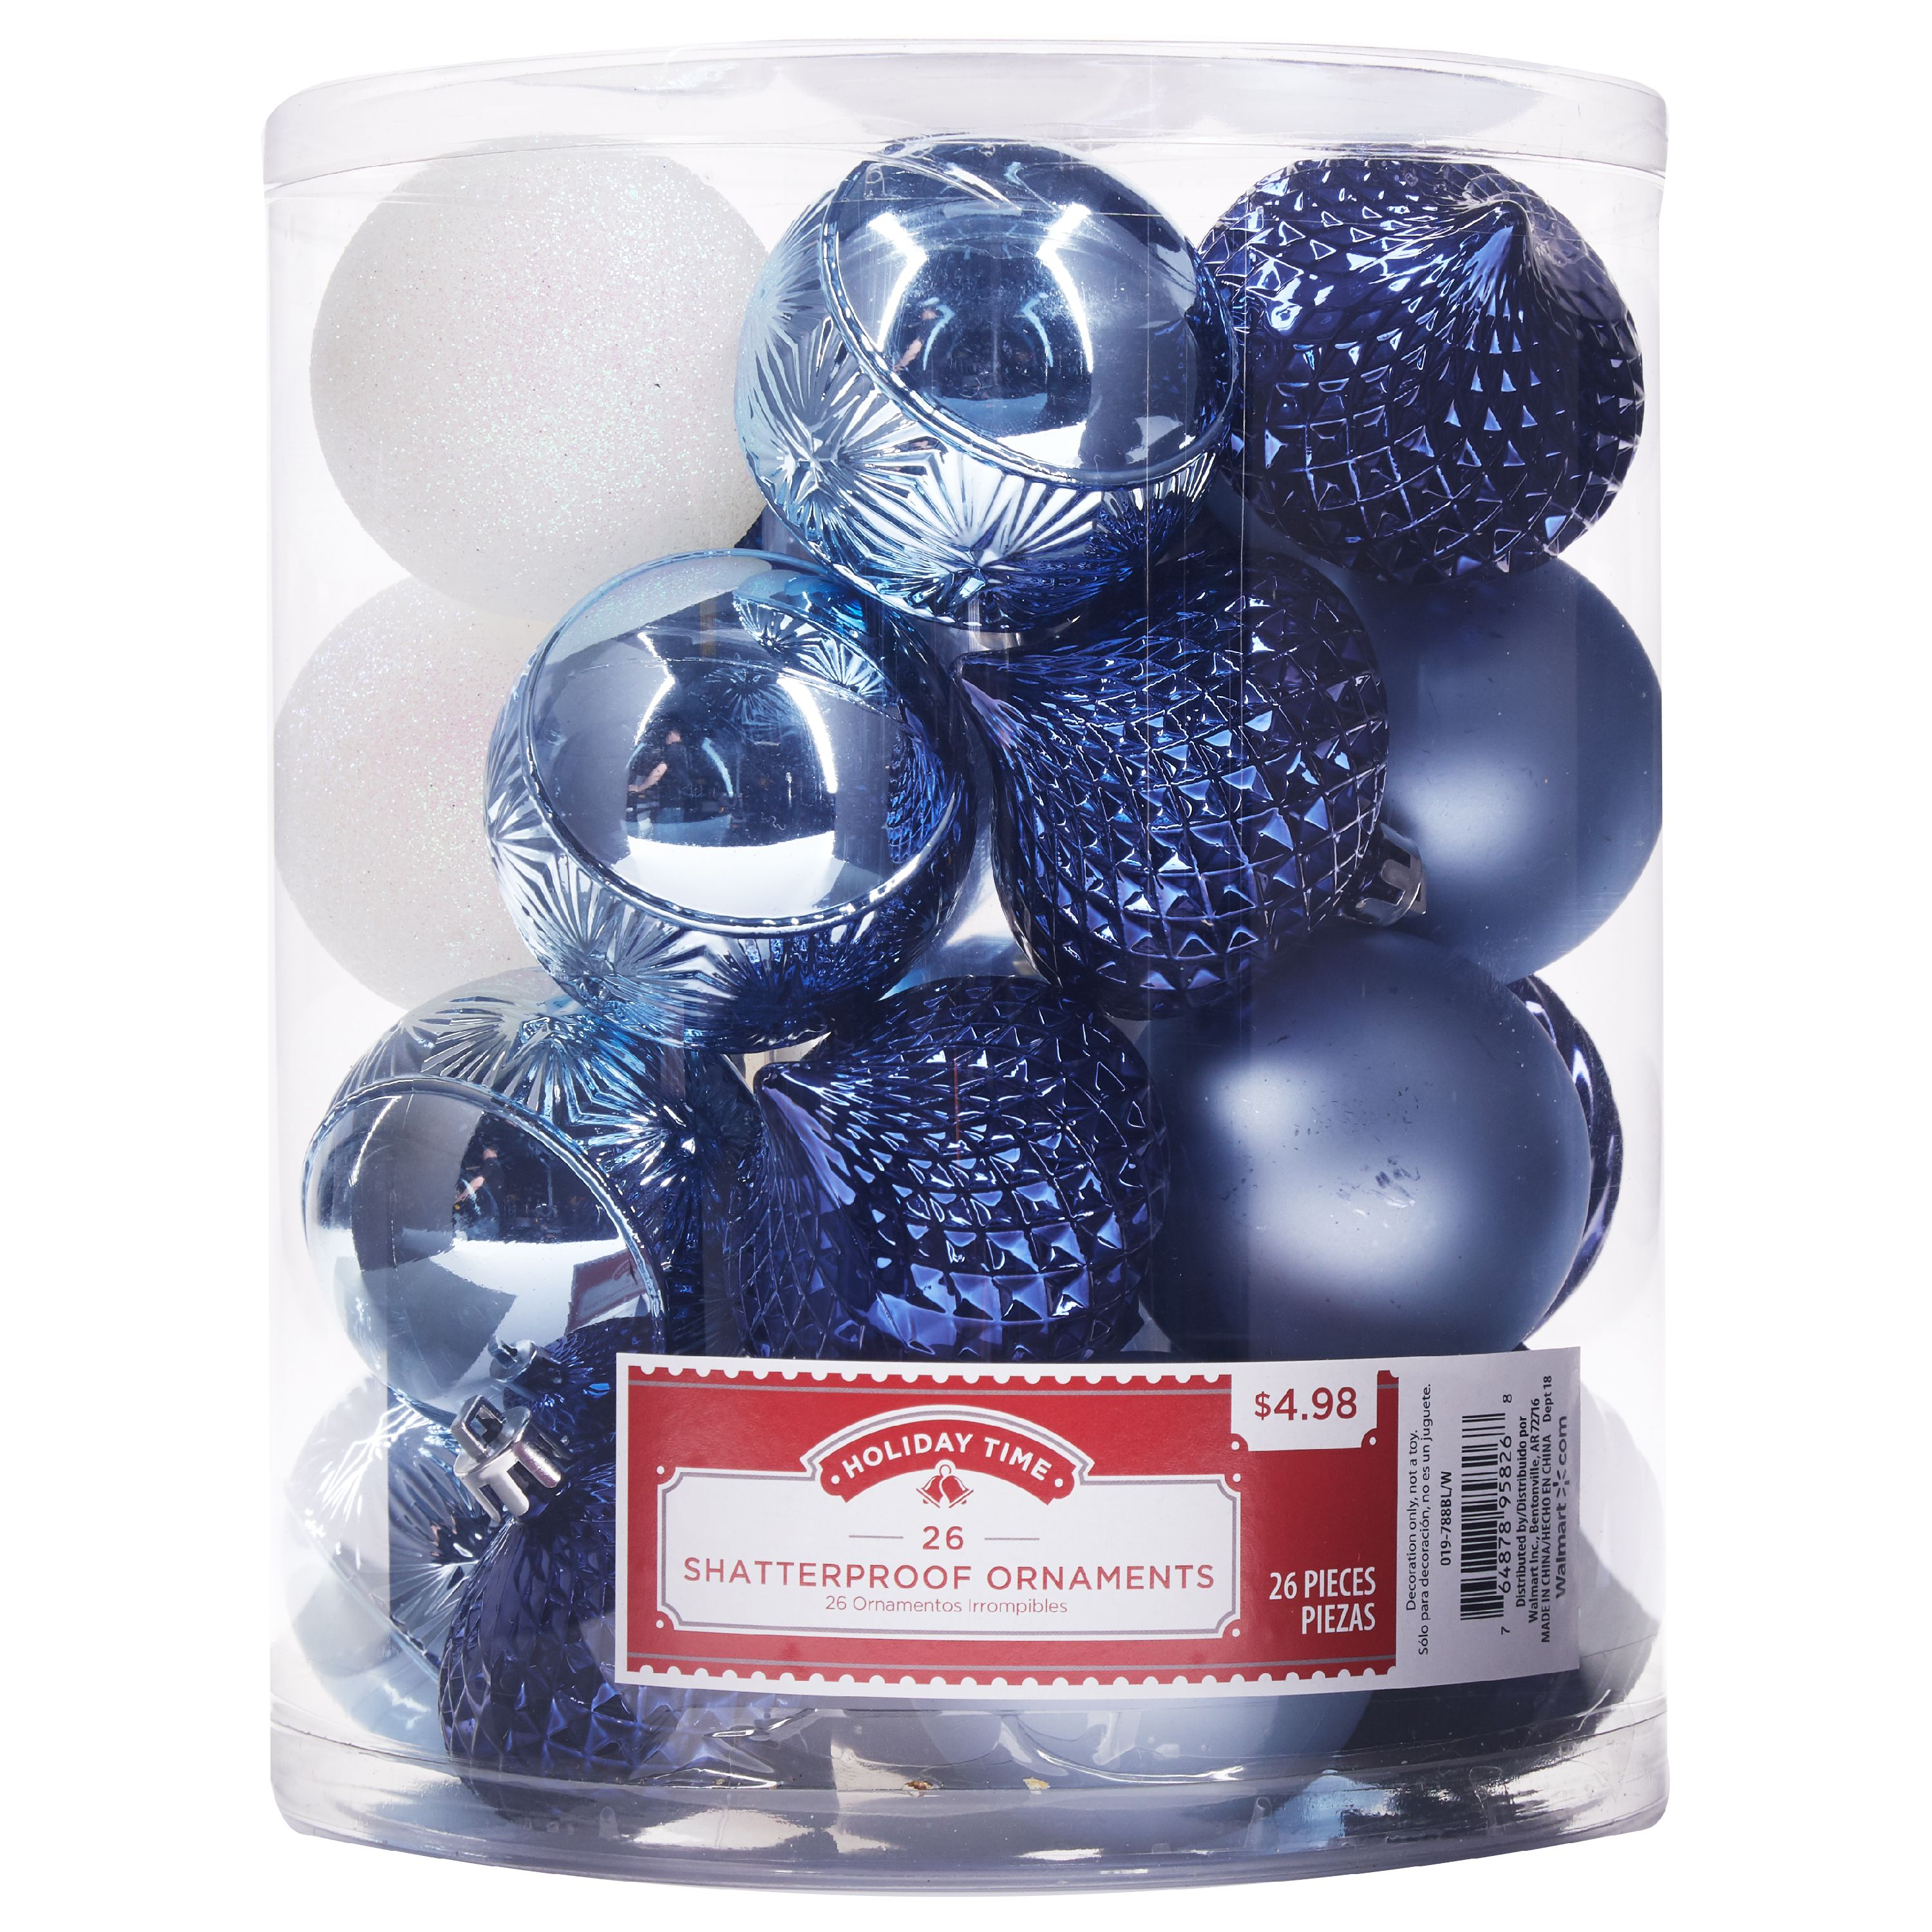 Holiday Time Shatterproof Ornaments, Blue & White, 26 Count